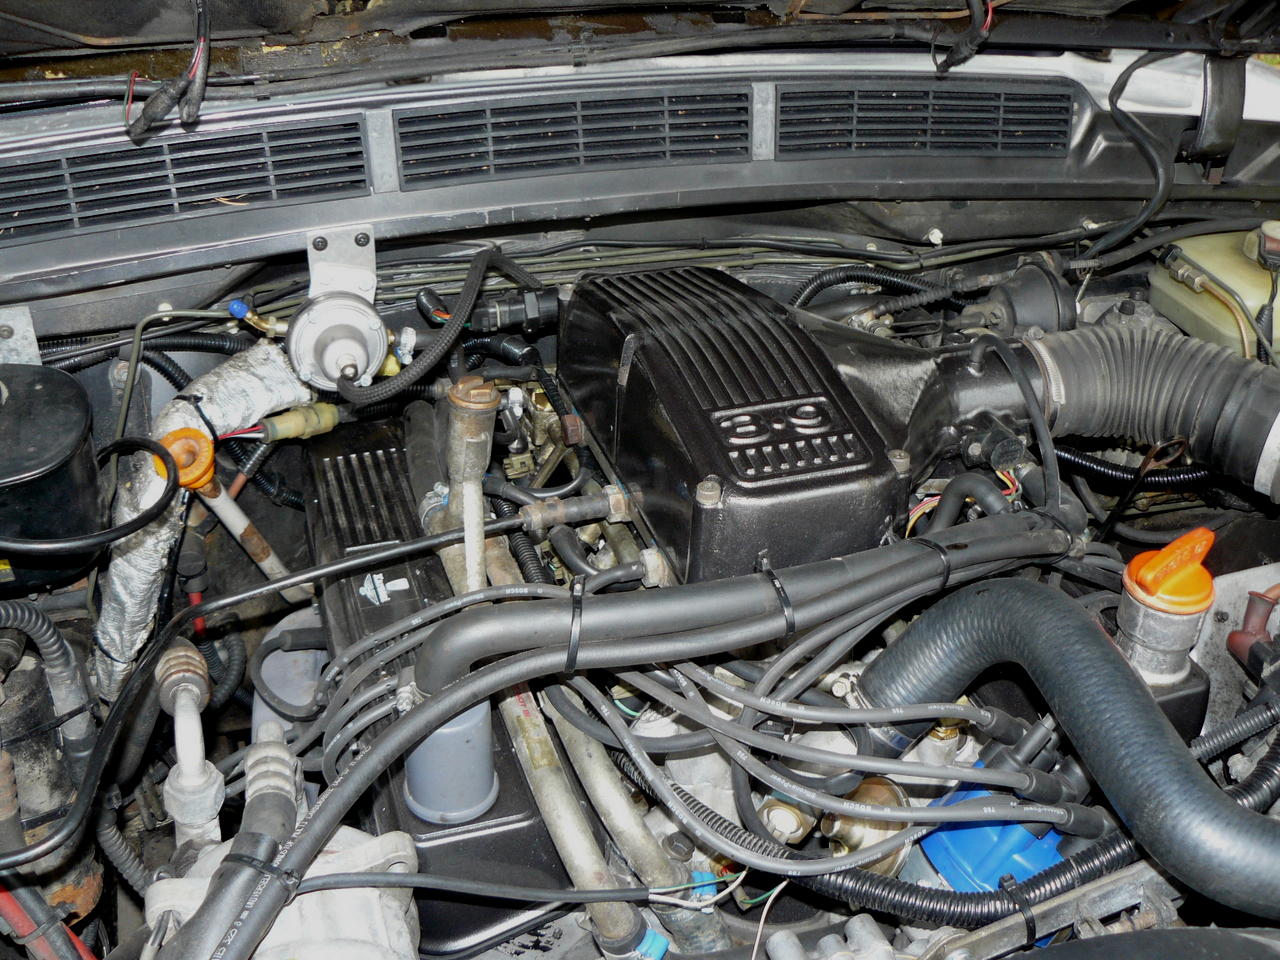 land rover discovery engine diagram on 96 land rover discovery Range Rover HSE 2005 Engine Diagram 96 range rover engine diagram trusted wiring diagram online